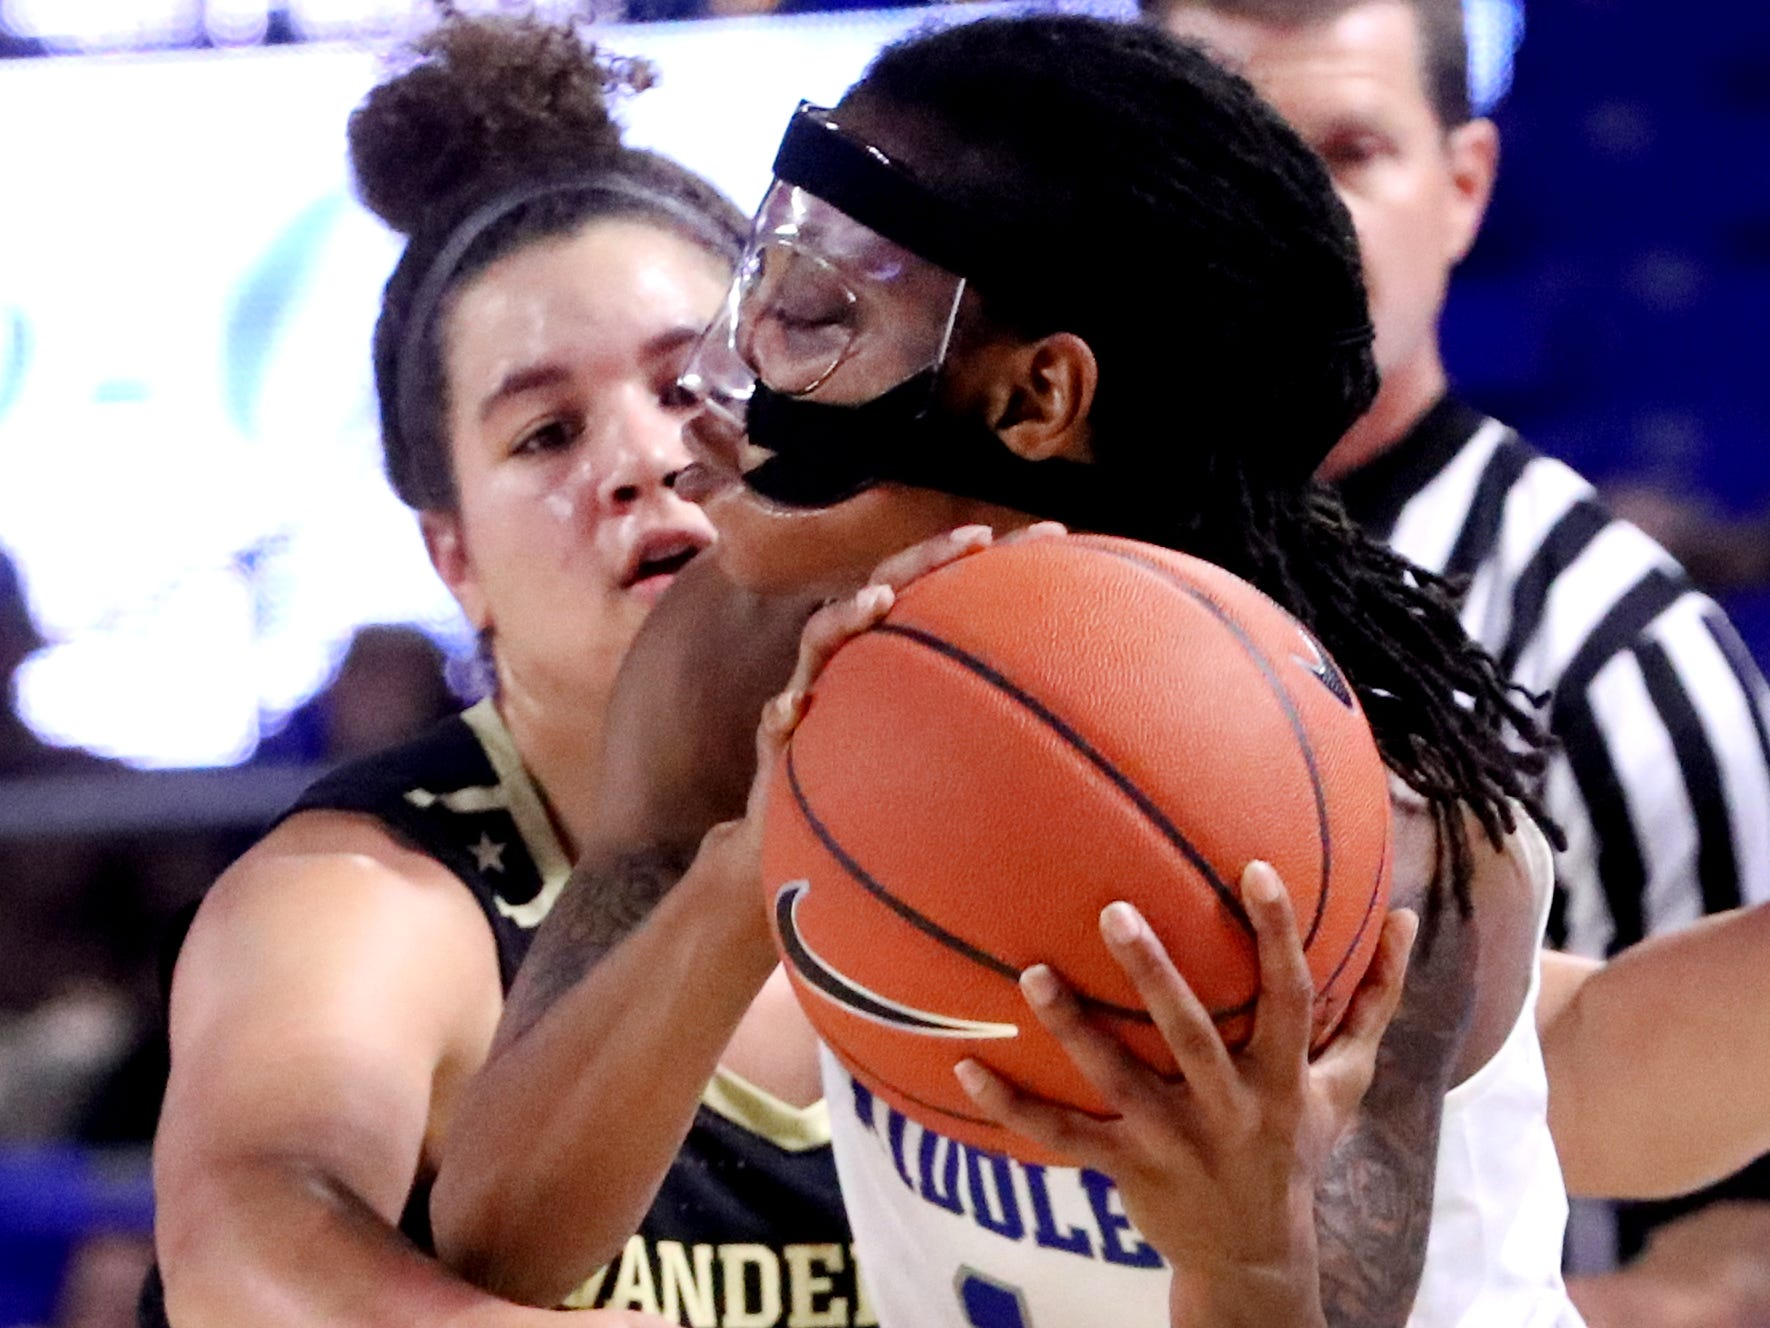 MTSU's A'Queen Hayes (1) looks to pass the ball as Vanderbilt's Kaleigh Clemons-Green (35) guards her during the women's home opening game at MTSU on Friday, Nov. 8, 2018.